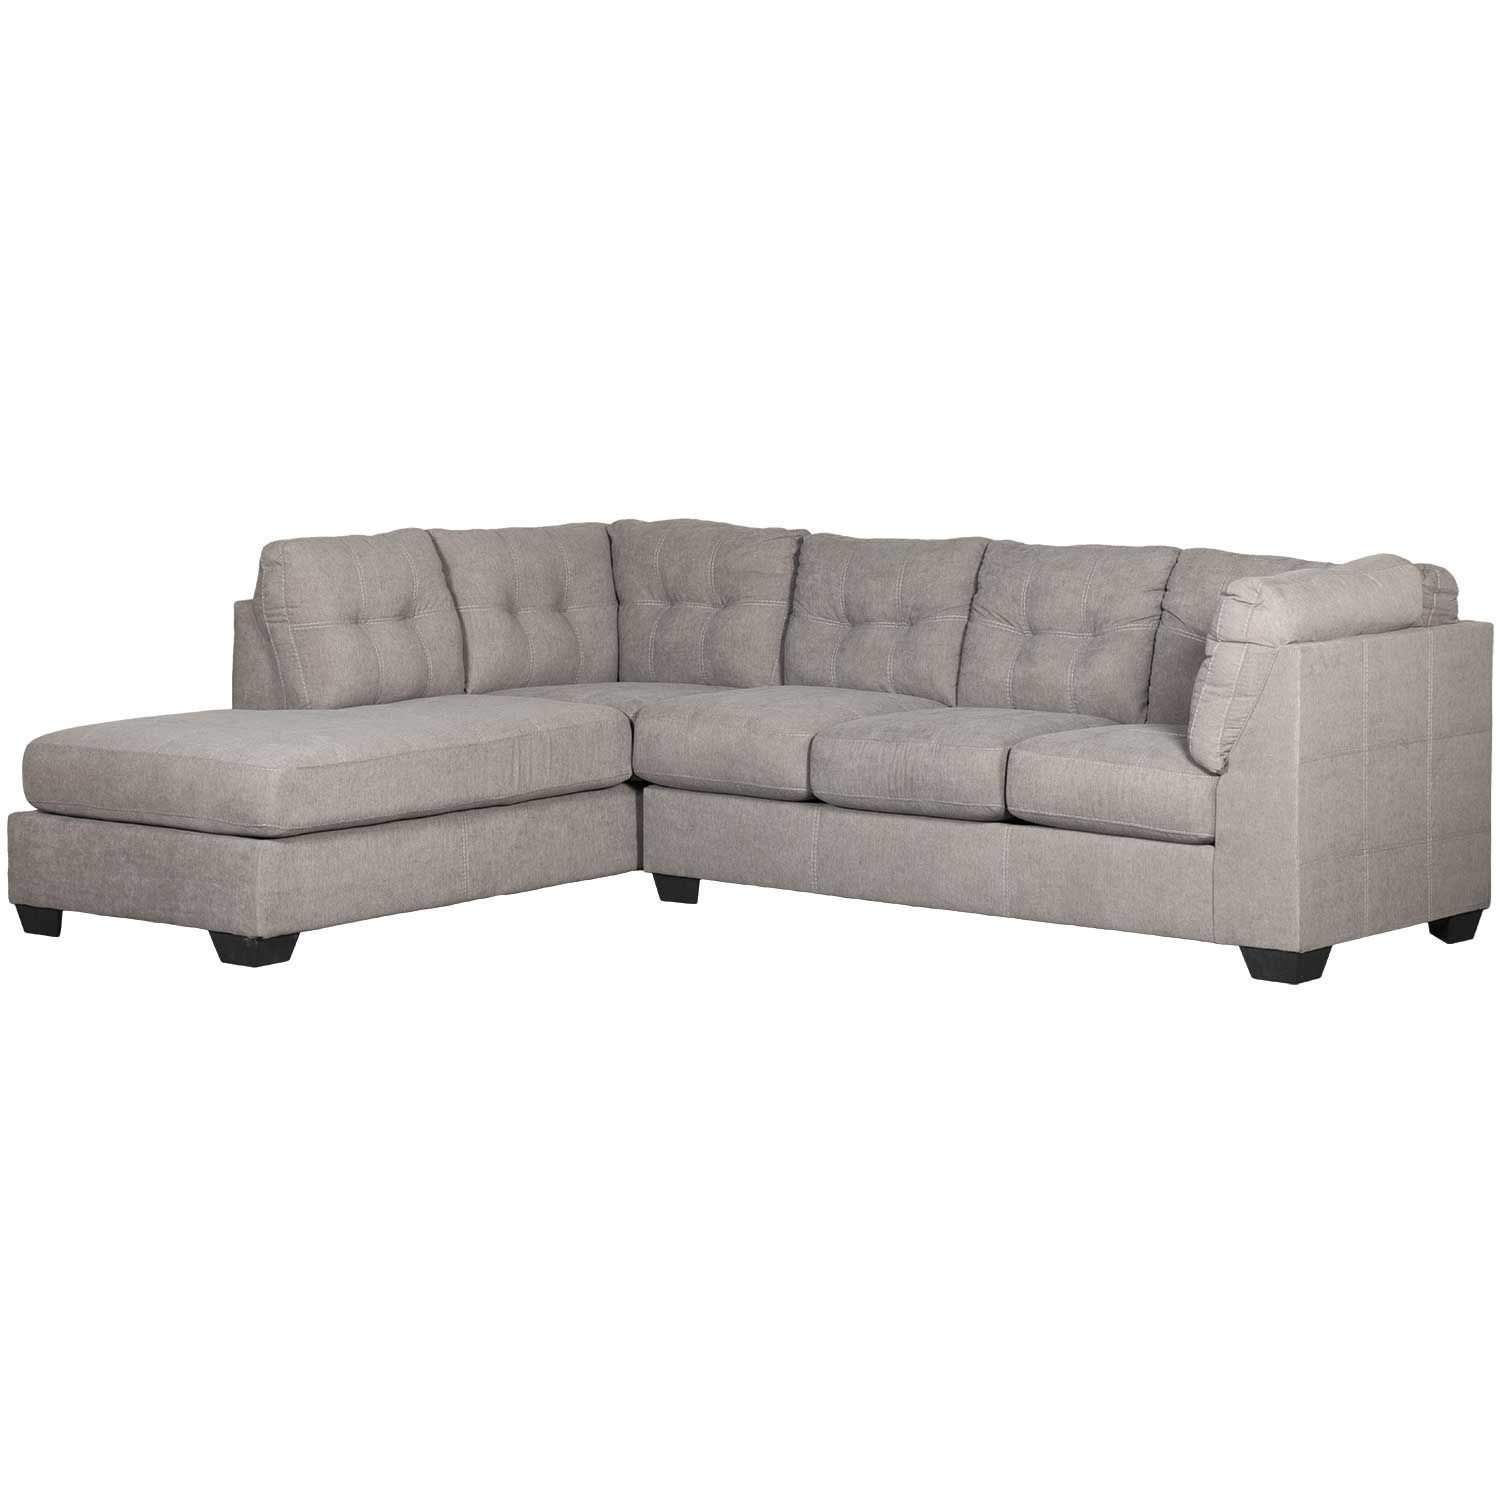 Maier Charcoal 2 Piece Sectional With Laf Chaise | 4520016/67 With Arrowmask 2 Piece Sectionals With Raf Chaise (Image 16 of 25)